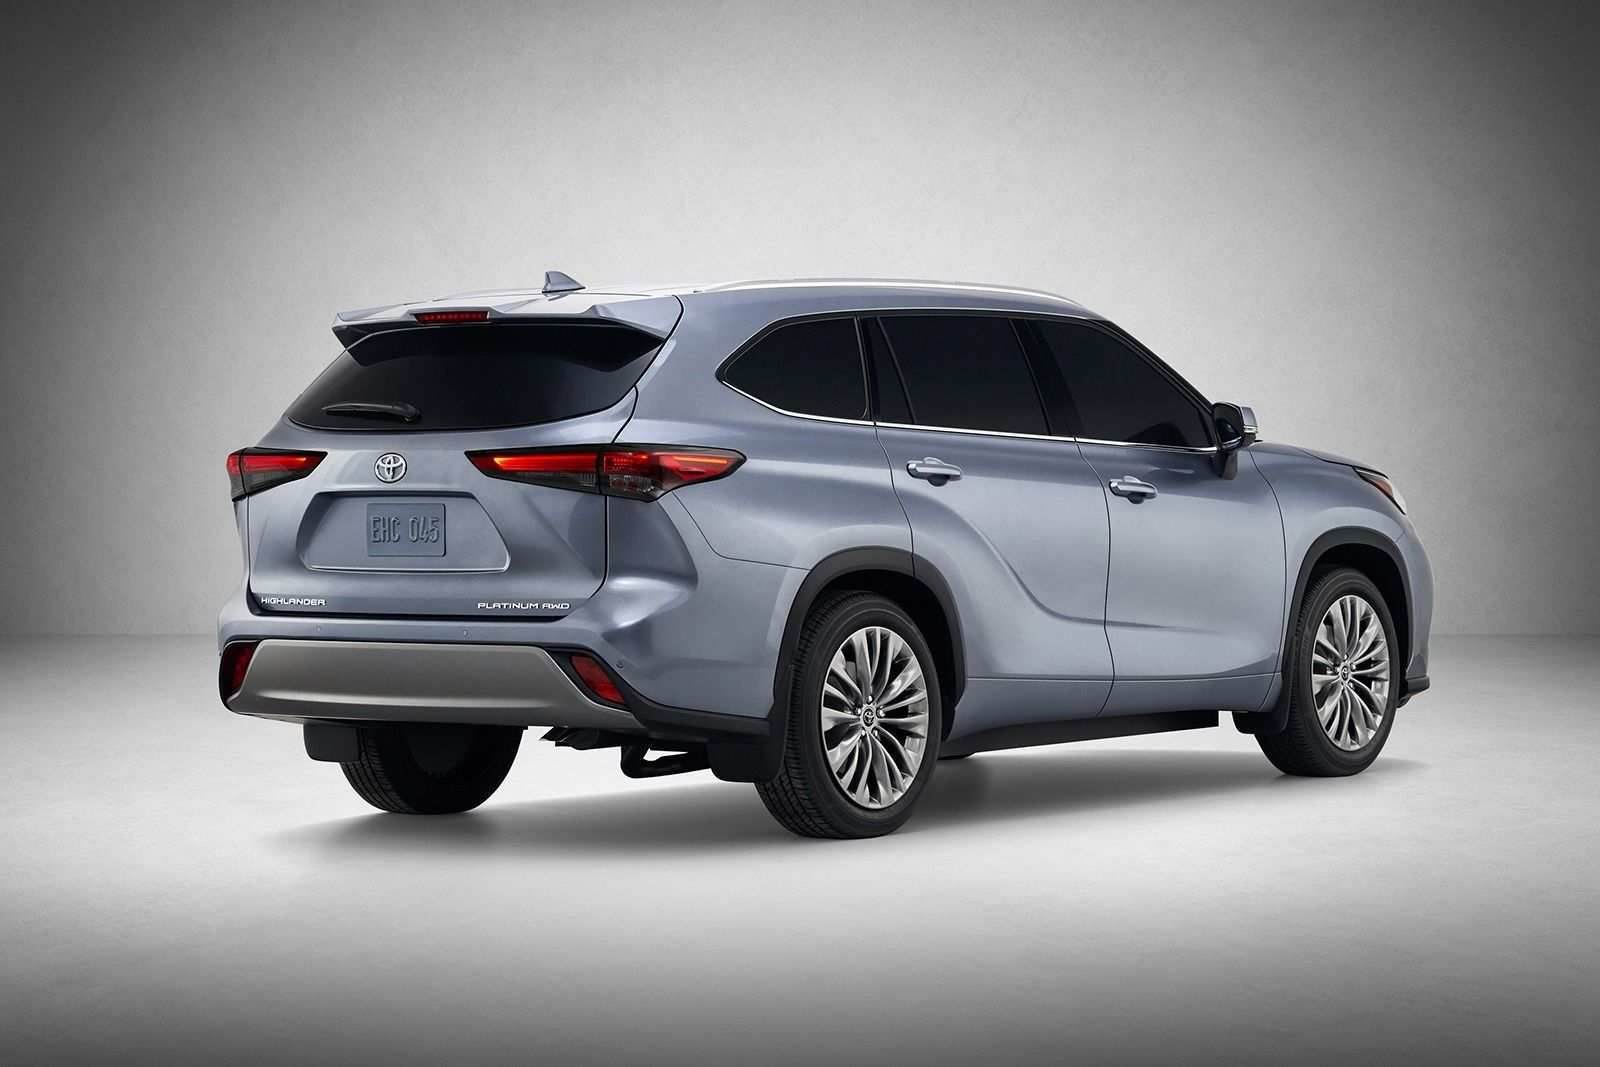 55 The Best Toyota Highlander 2020 Release Date Review